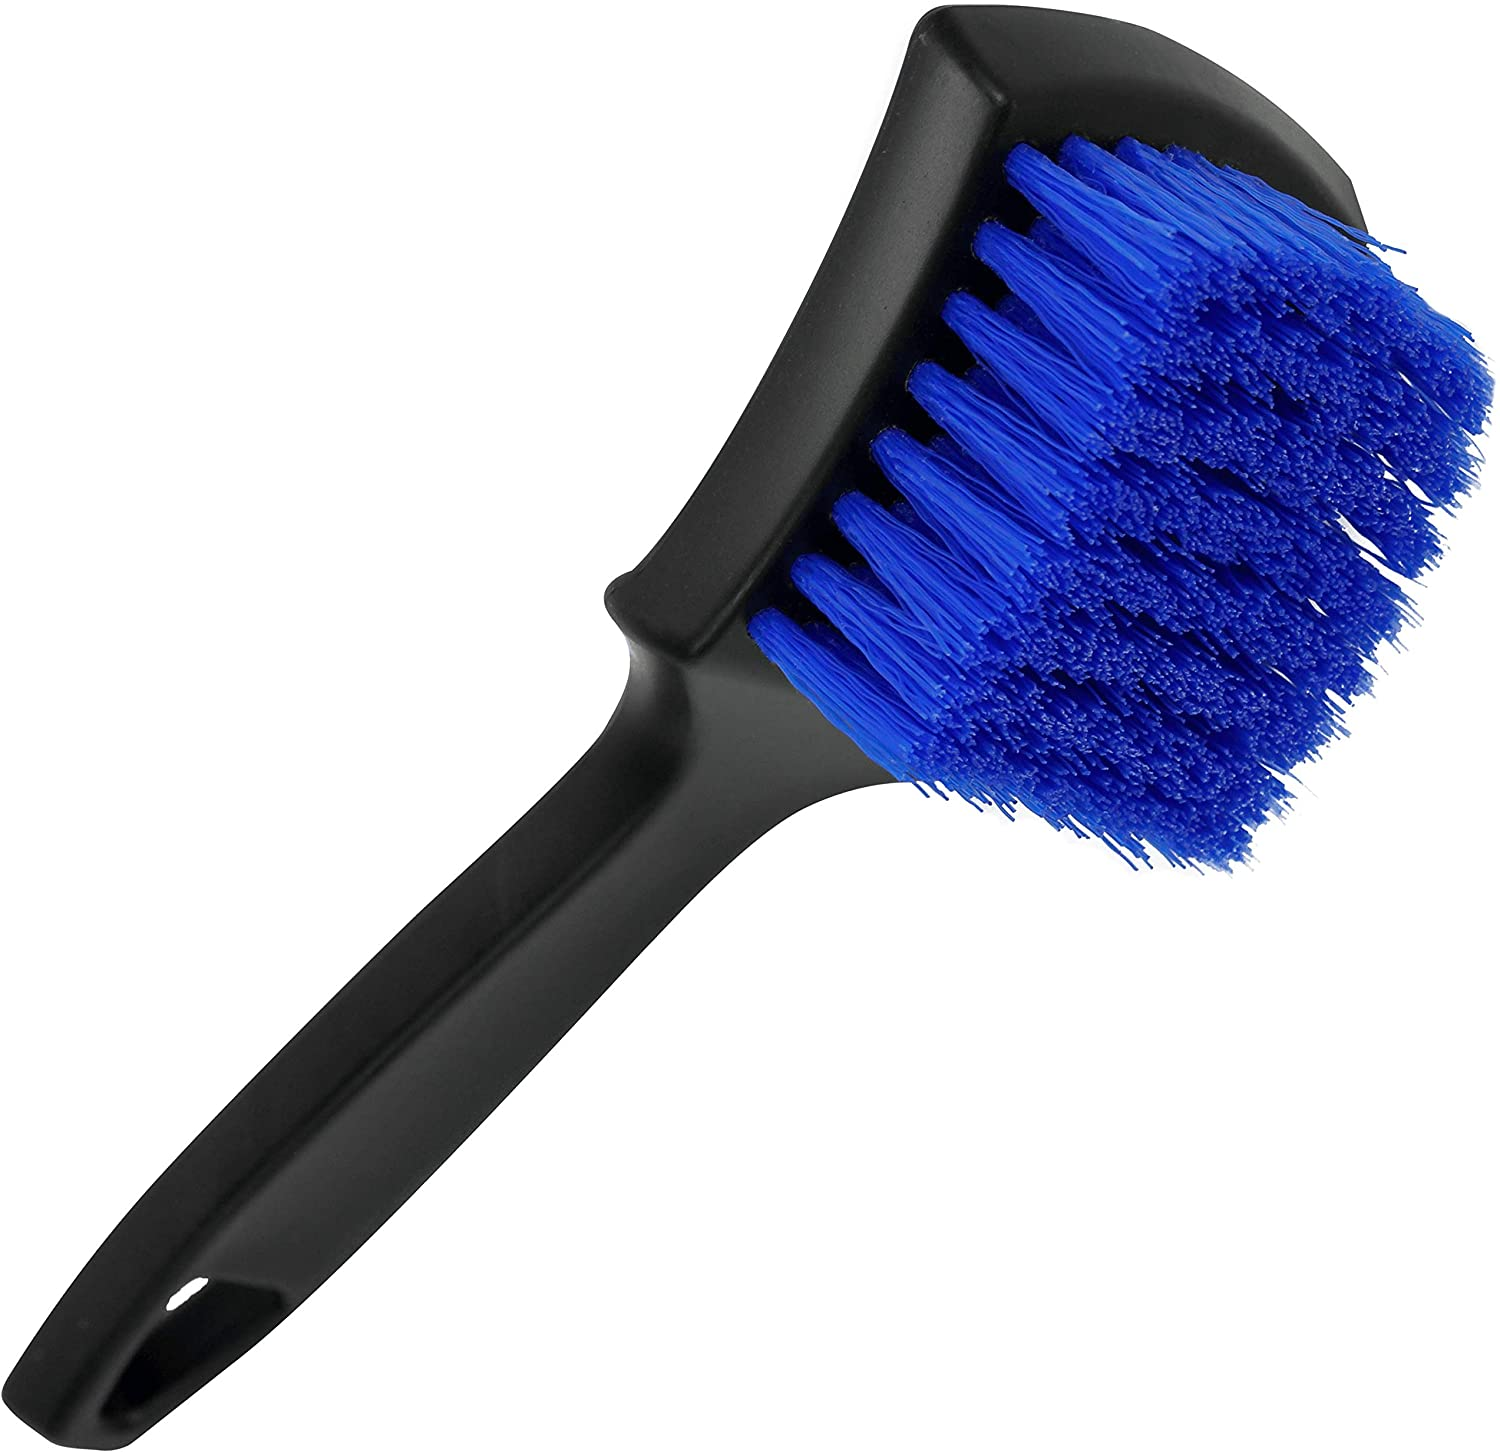 VIKING Carpet and Upholstery Cleaning Brush, Scrub Brush for Car Interior, Home, Couch, Stain Remover, Black/Blue